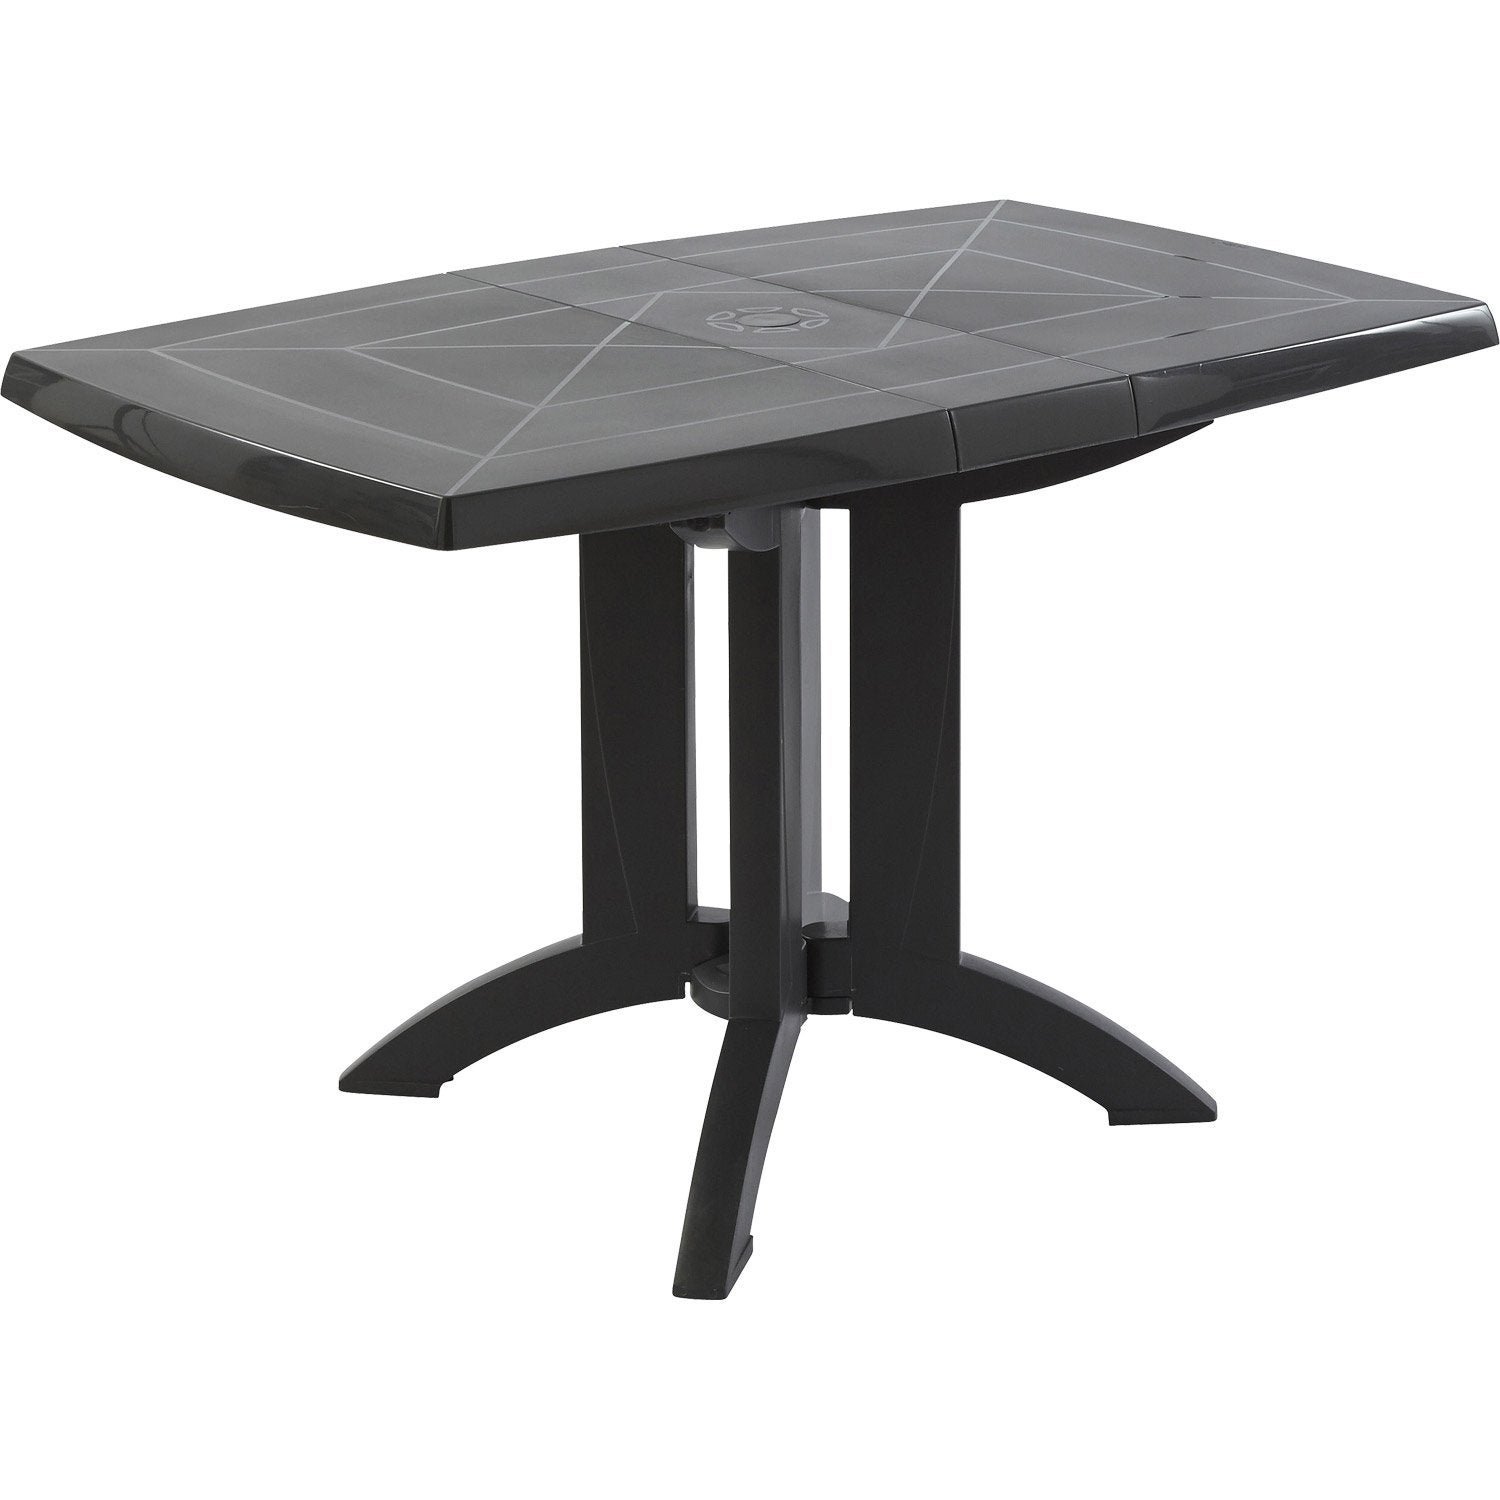 Table de jardin grosfillex v ga rectangulaire anthracite 4 personnes leroy merlin - Table de salon pliante ...